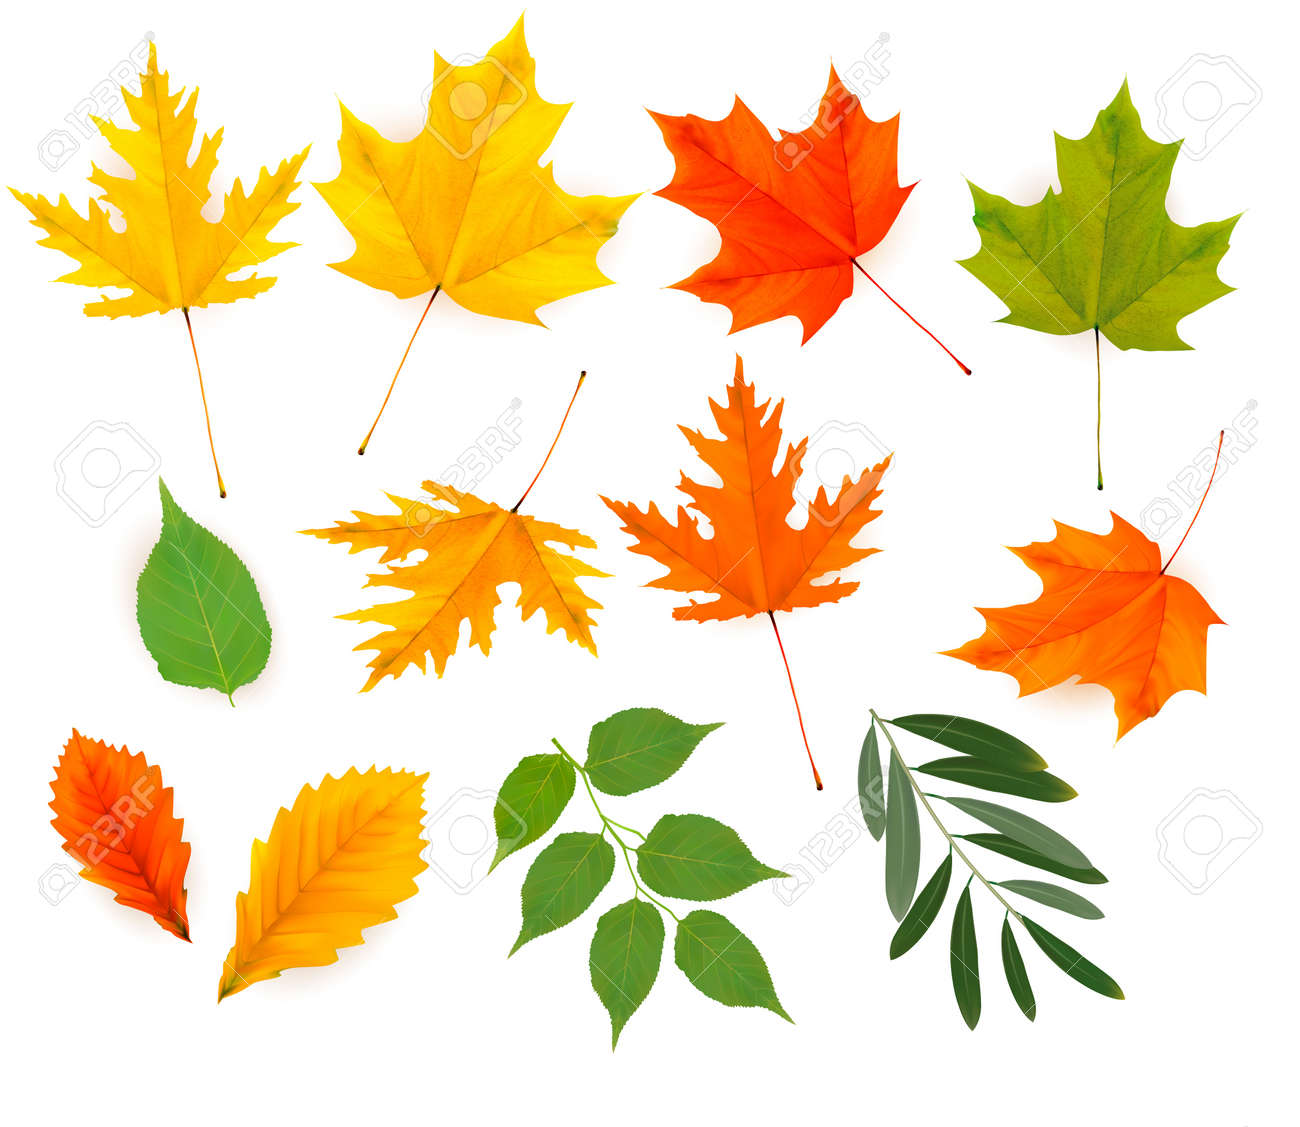 Set of colorful autumn leaves. Stock Vector - 15400399